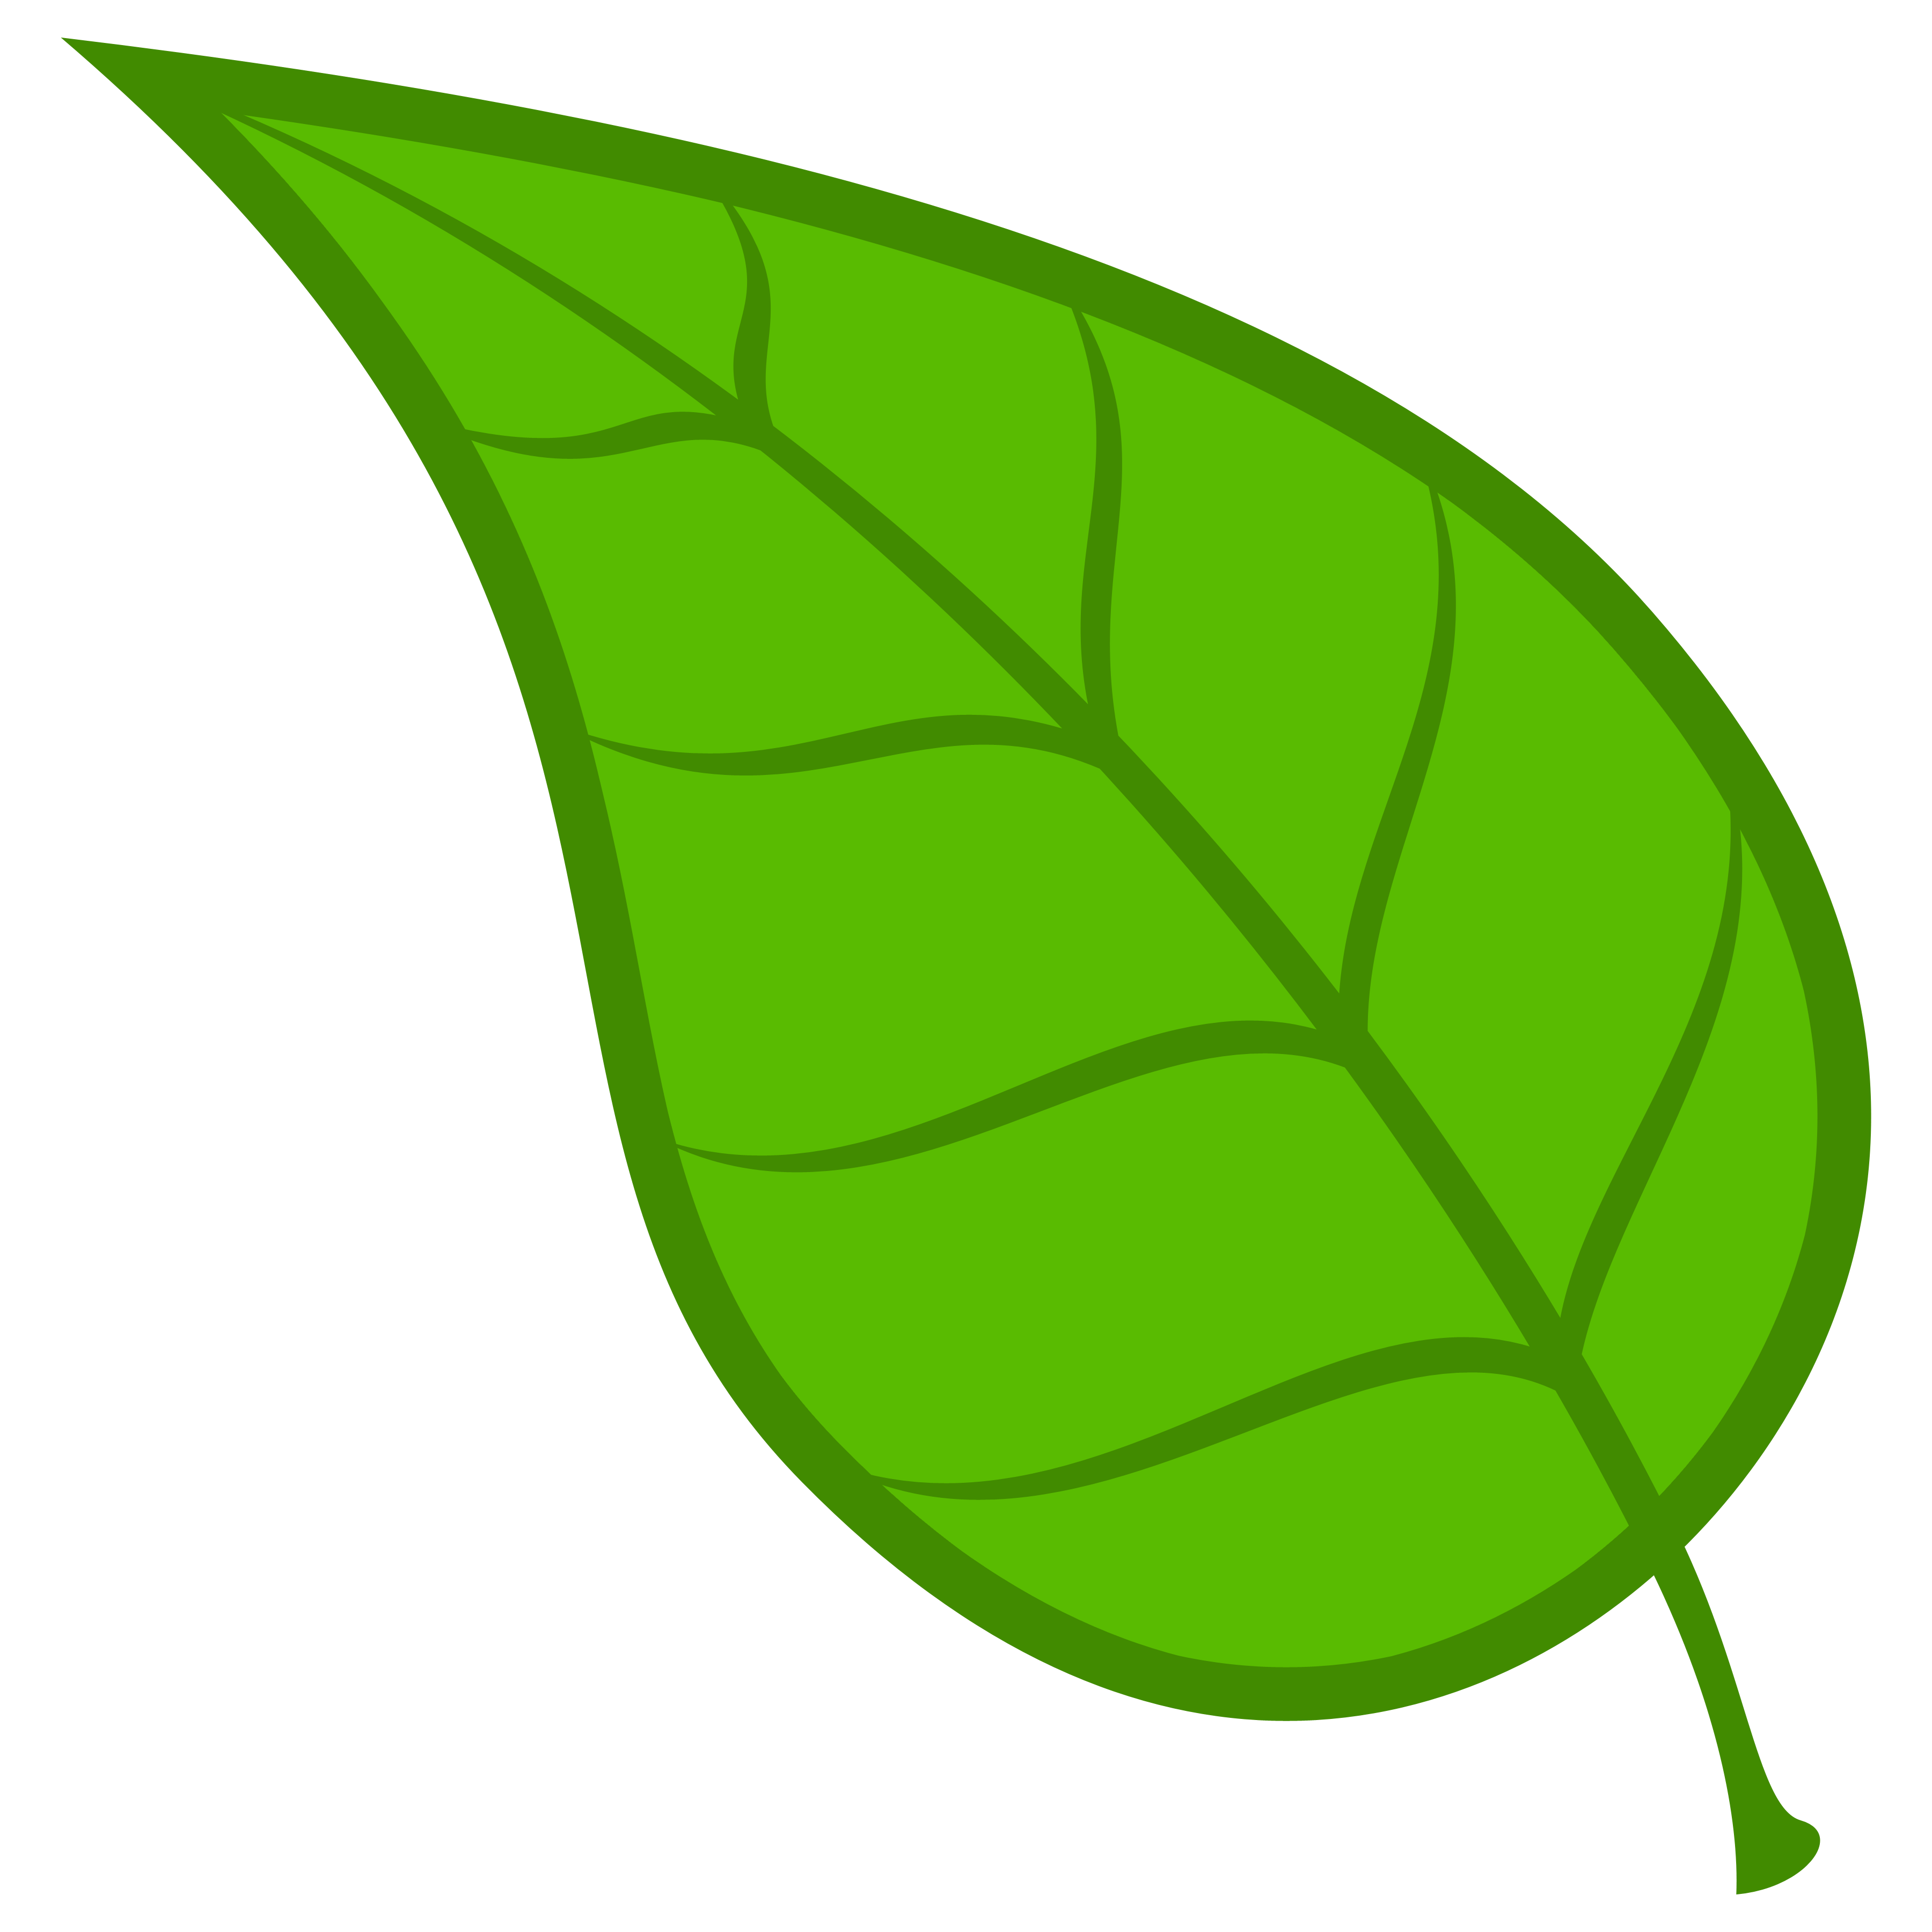 Leaves Leaf free download clip art on clipart library png